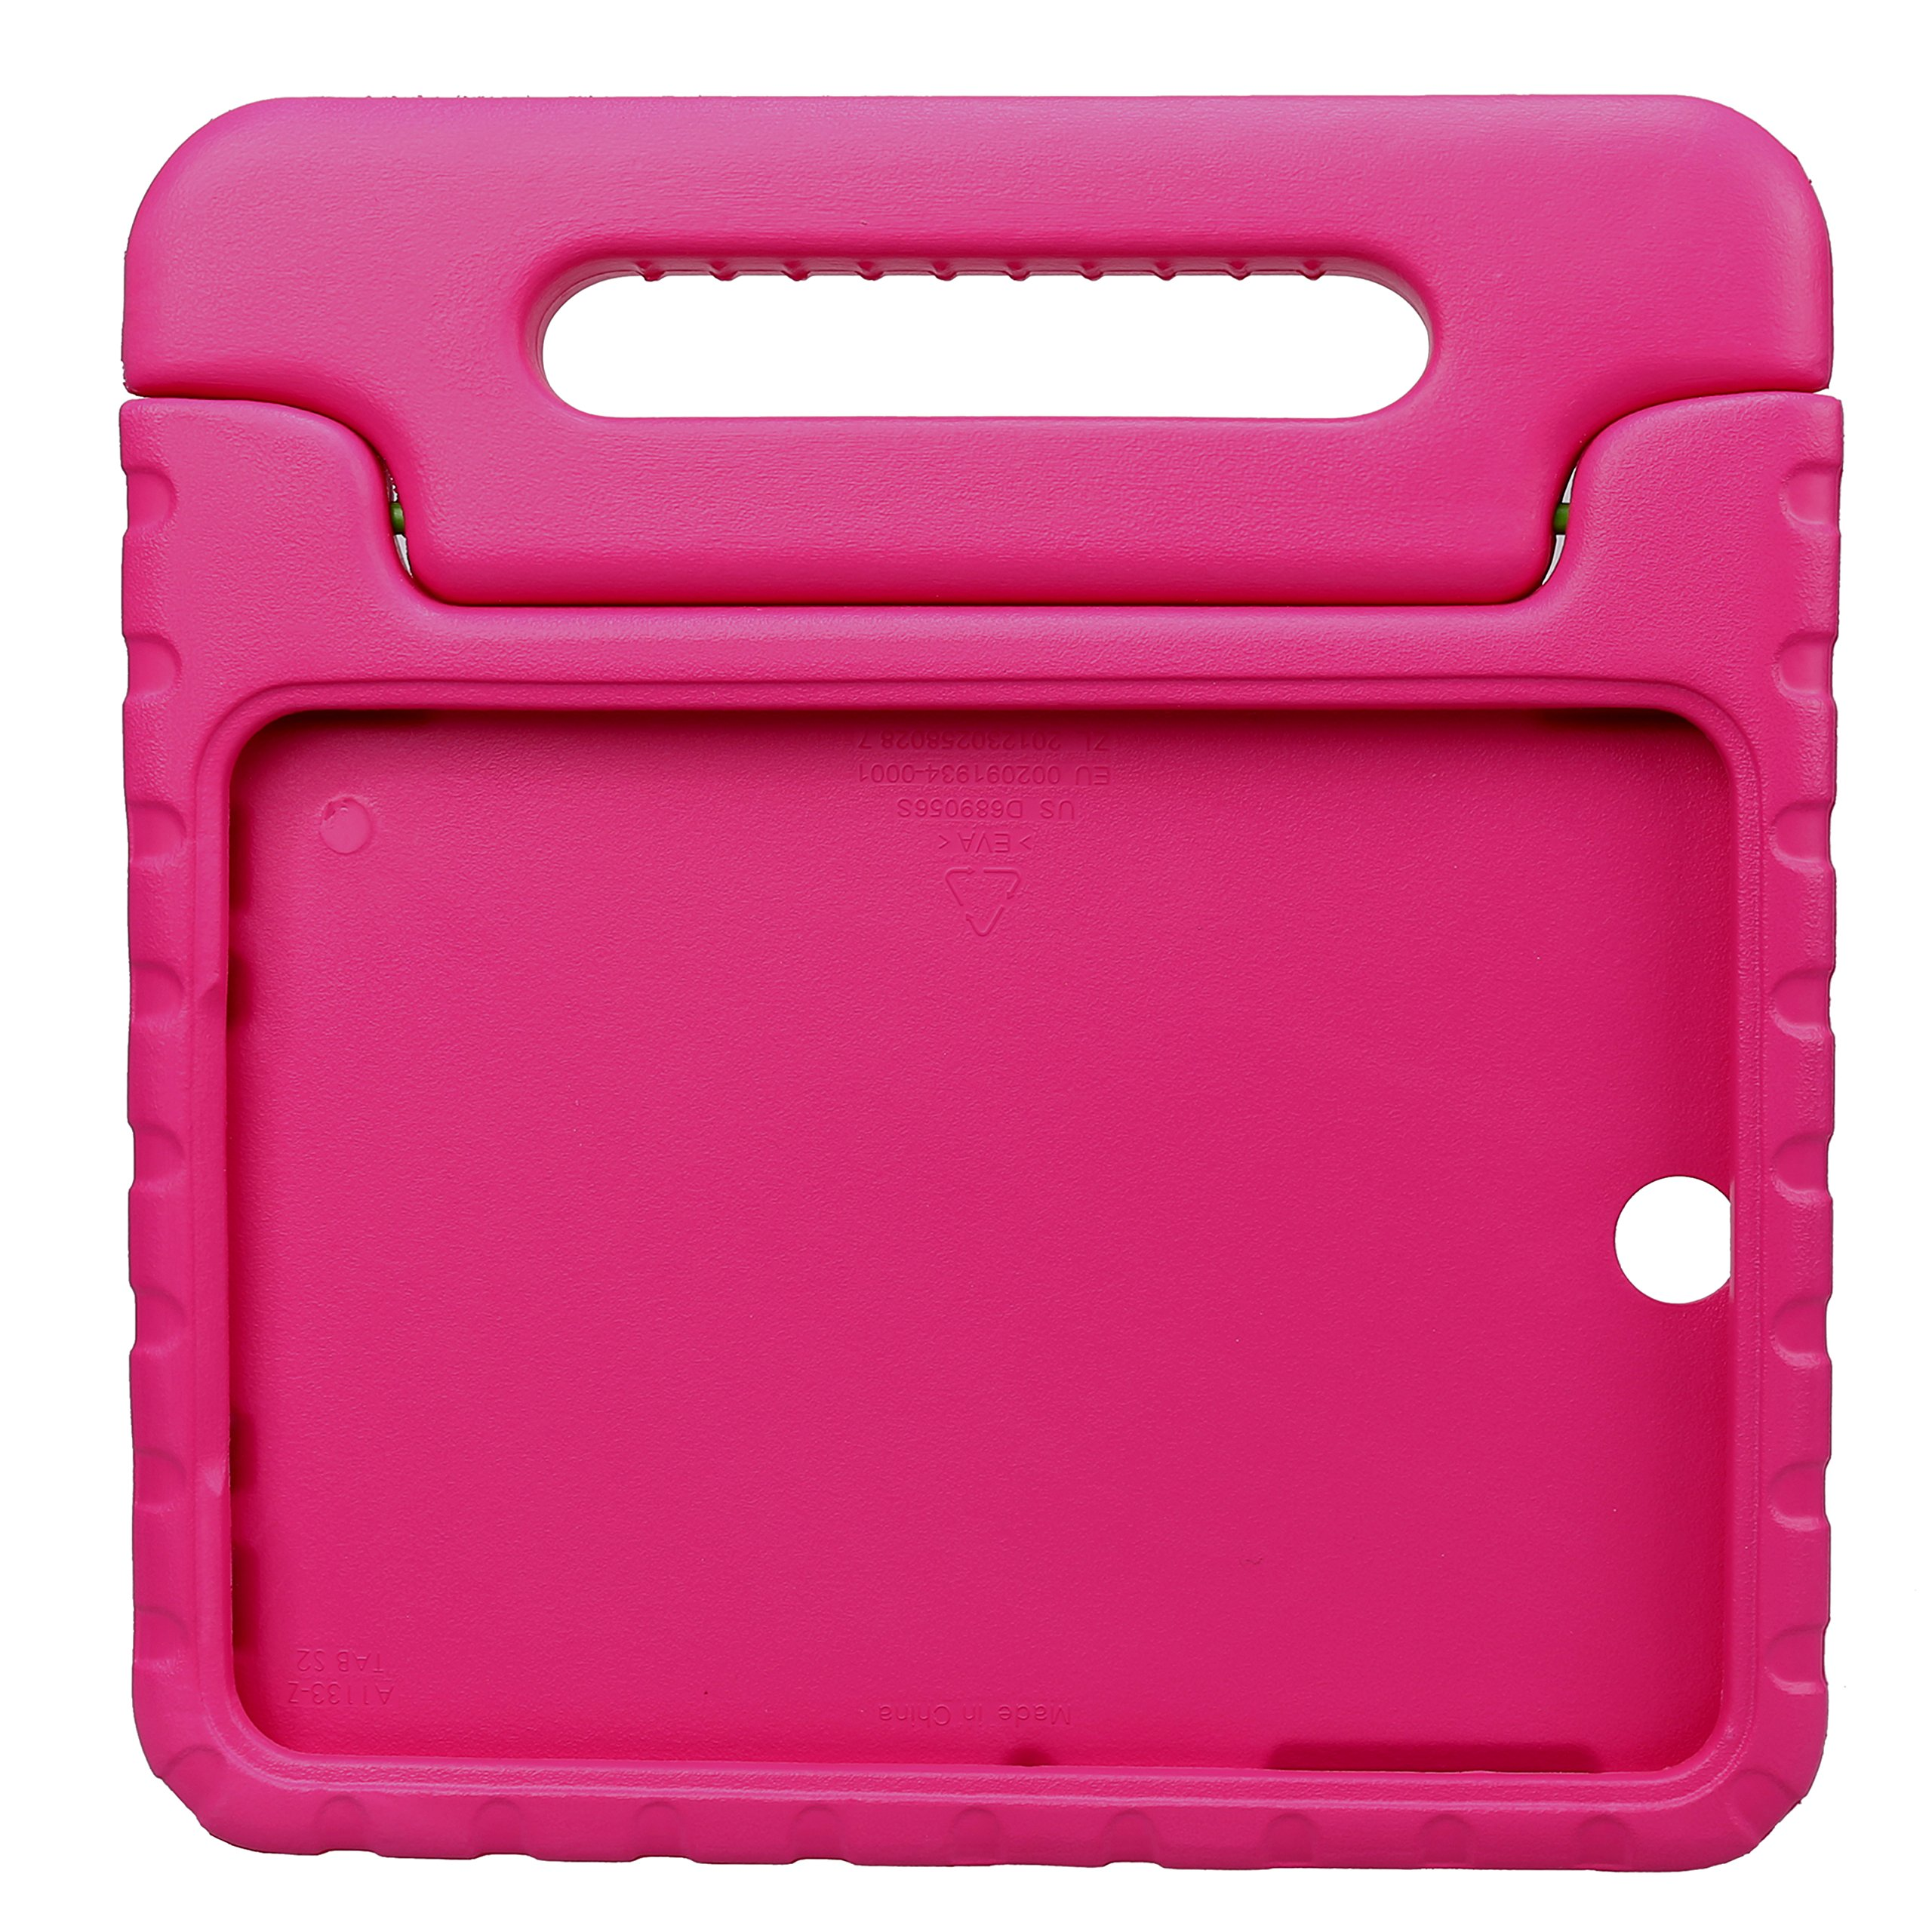 NEWSTYLE Tab S2 9.7 Shockproof Case Light Weight Kids Case Super Protection Cover Handle Stand Case for Kids Children for Samsung Galaxy Tab S2 9.7-inch Tablet SM-T810 SM-T815 (S2 9.7, Rose)